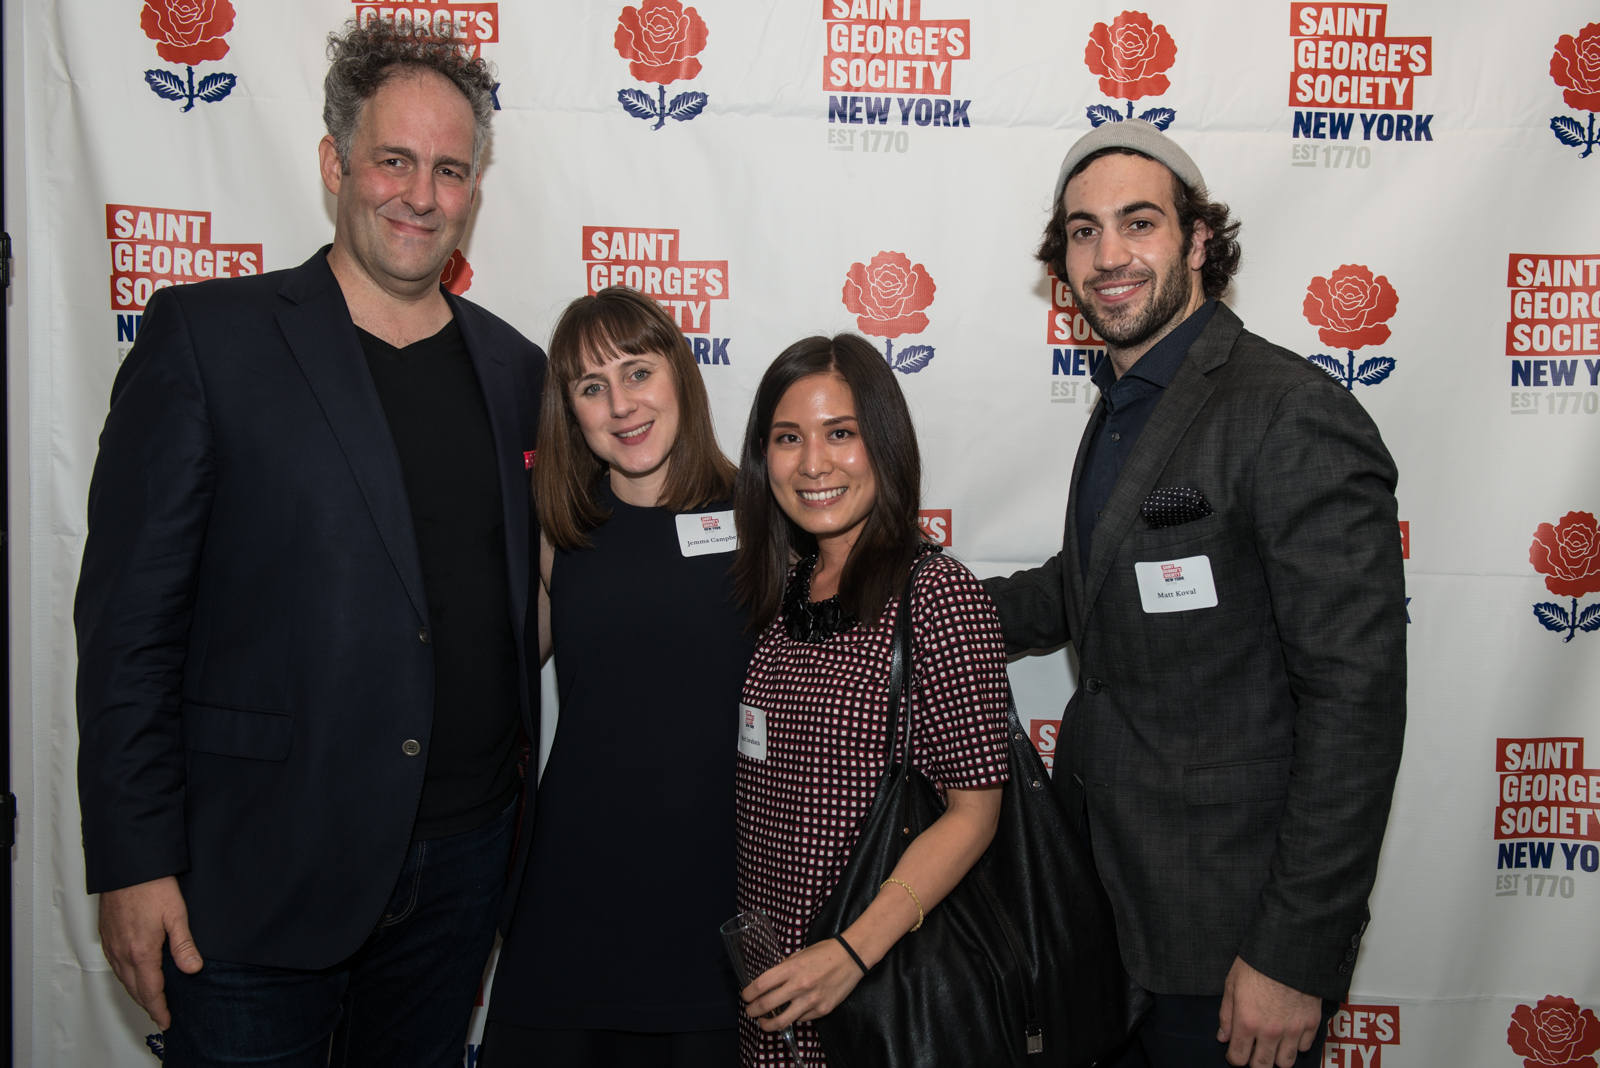 The Landor team (L to R): Wally Krantz, Jemma Campbell, Mari Iwahara and Matt Koval.